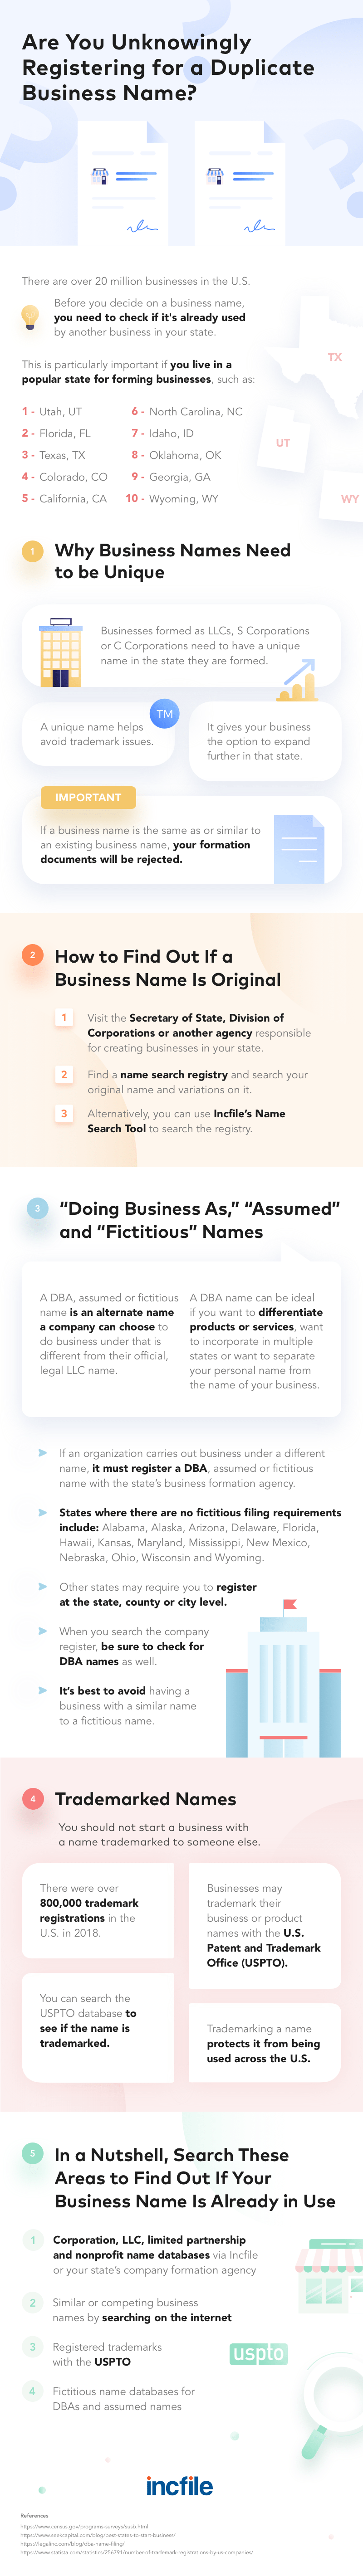 How to Find Out If a Business Name Is Already Registered